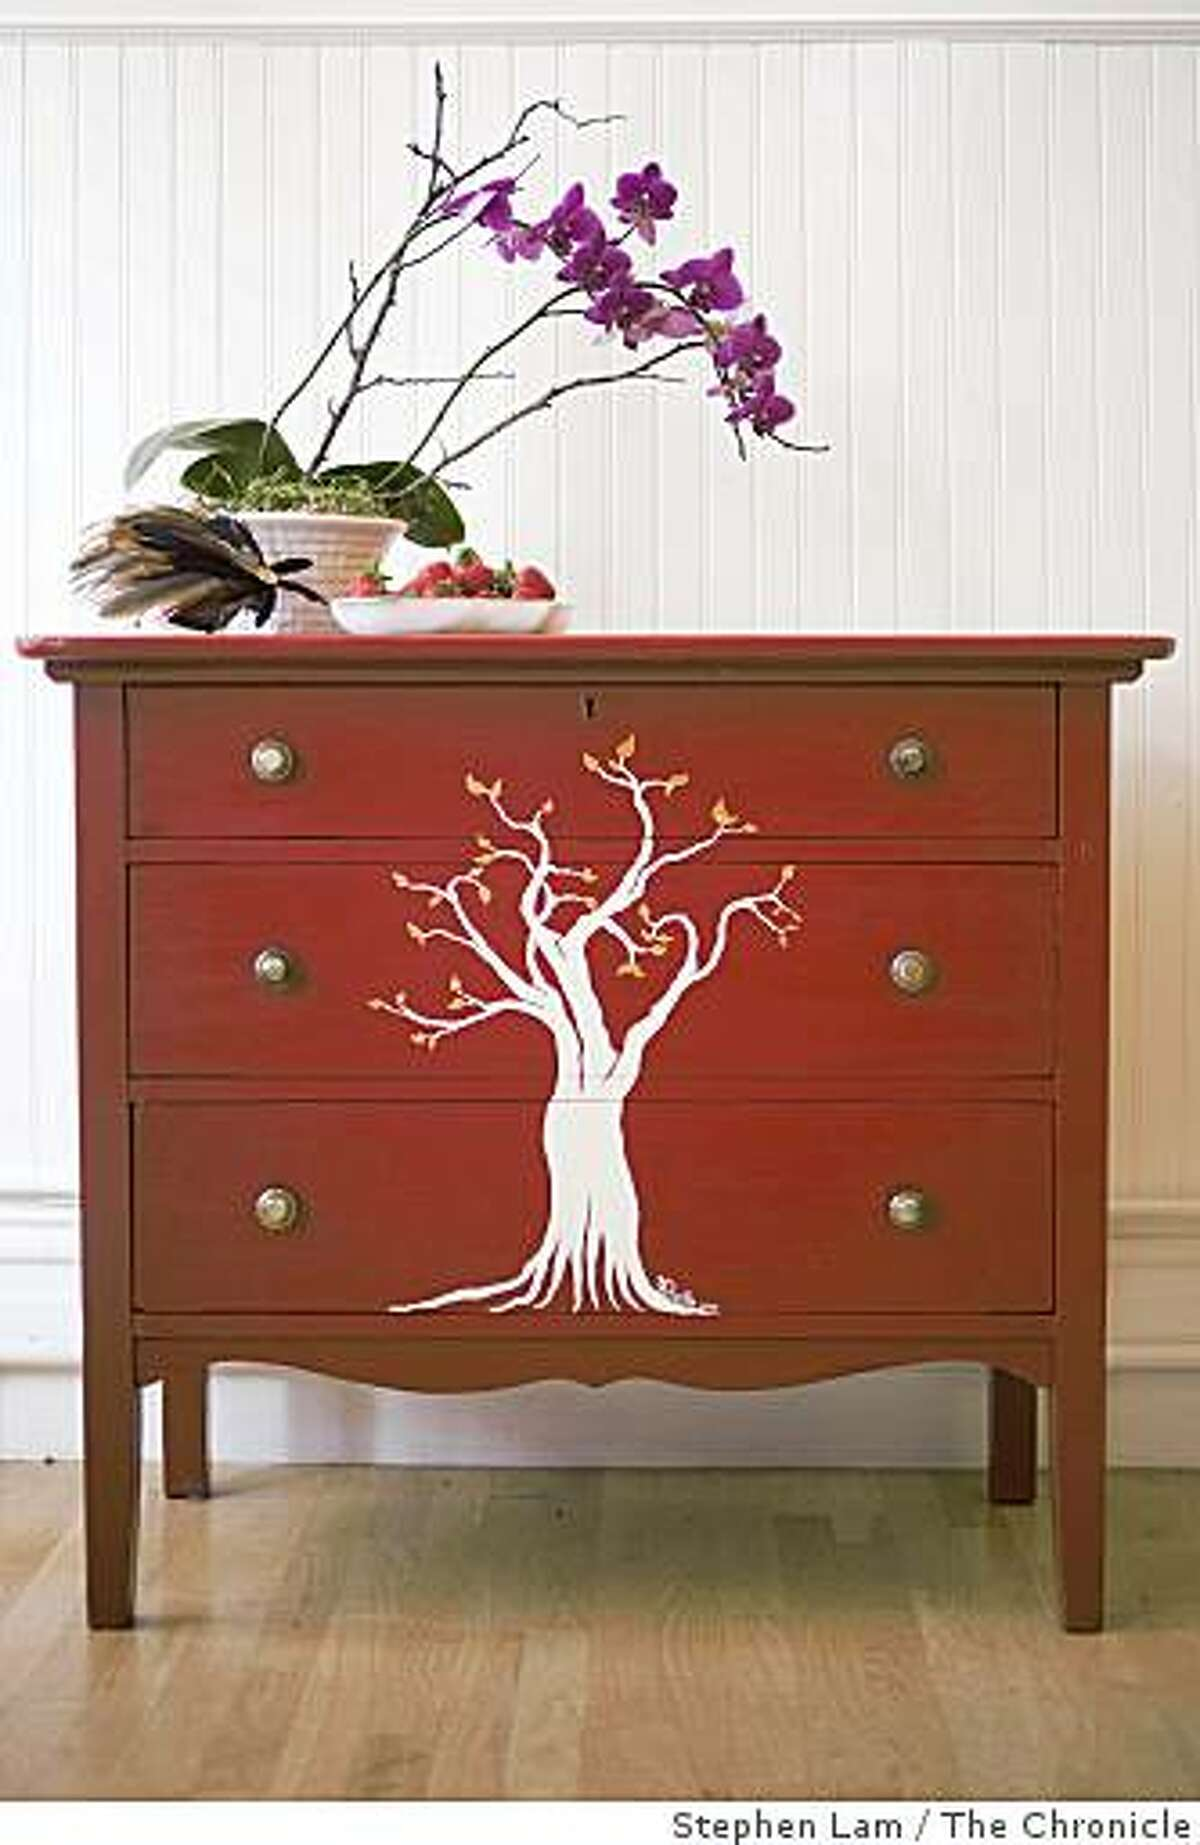 A hand-painted Two Hearts Trees dresser at Swankety Swank, a gallery boutique store along the Divisadero Corridor in San Francisco Wednesday, June 24, 2009.